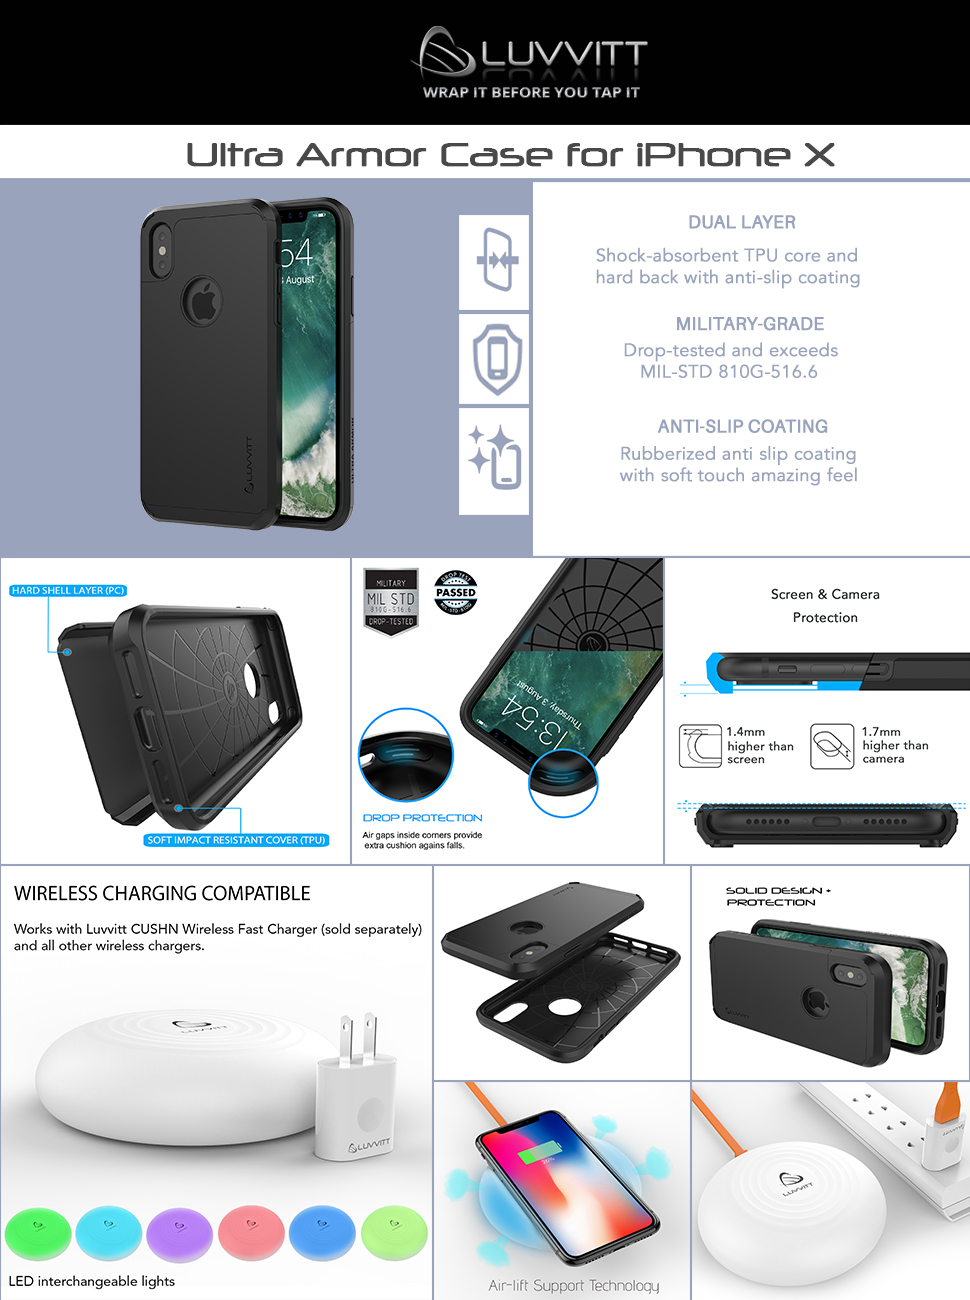 iPhone Xs Case, Luvvitt Ultra Armor Cover with Dual Layer